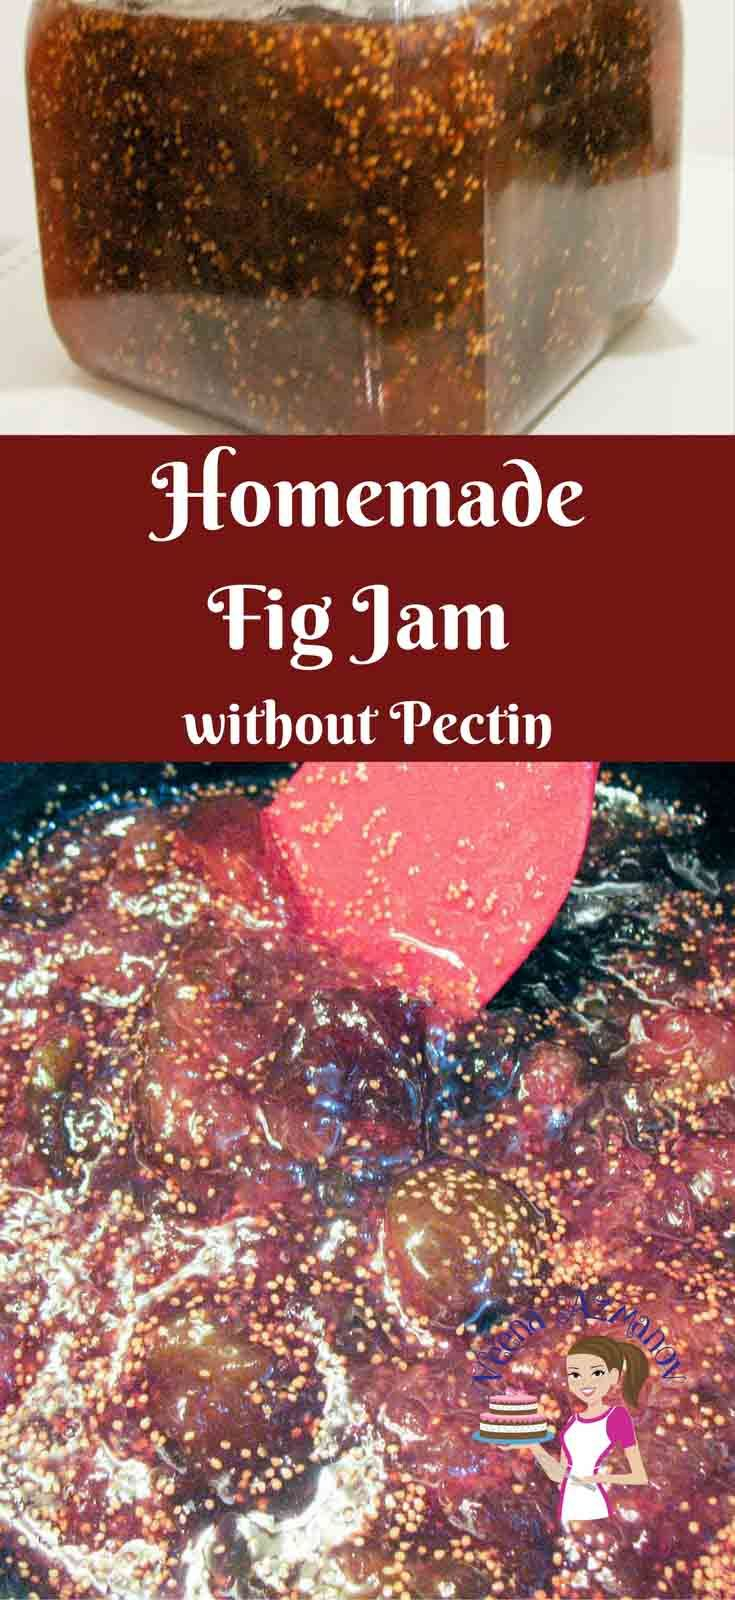 CLASSIC FIG JAM WITH LESS SUGAR - HOW TO FIG JAM This homemade fig jam recipe is soft, fruity, delicious and easy to spread. In this video I show you how to make this classic jam recipe without using any pectin or artificial flavorings just like our moms and grandmas use to do it. @Veenaazmanov #jam #fig #recipe #figjamrecipe #howtofigjam #jams #homemade #scratch #recipe